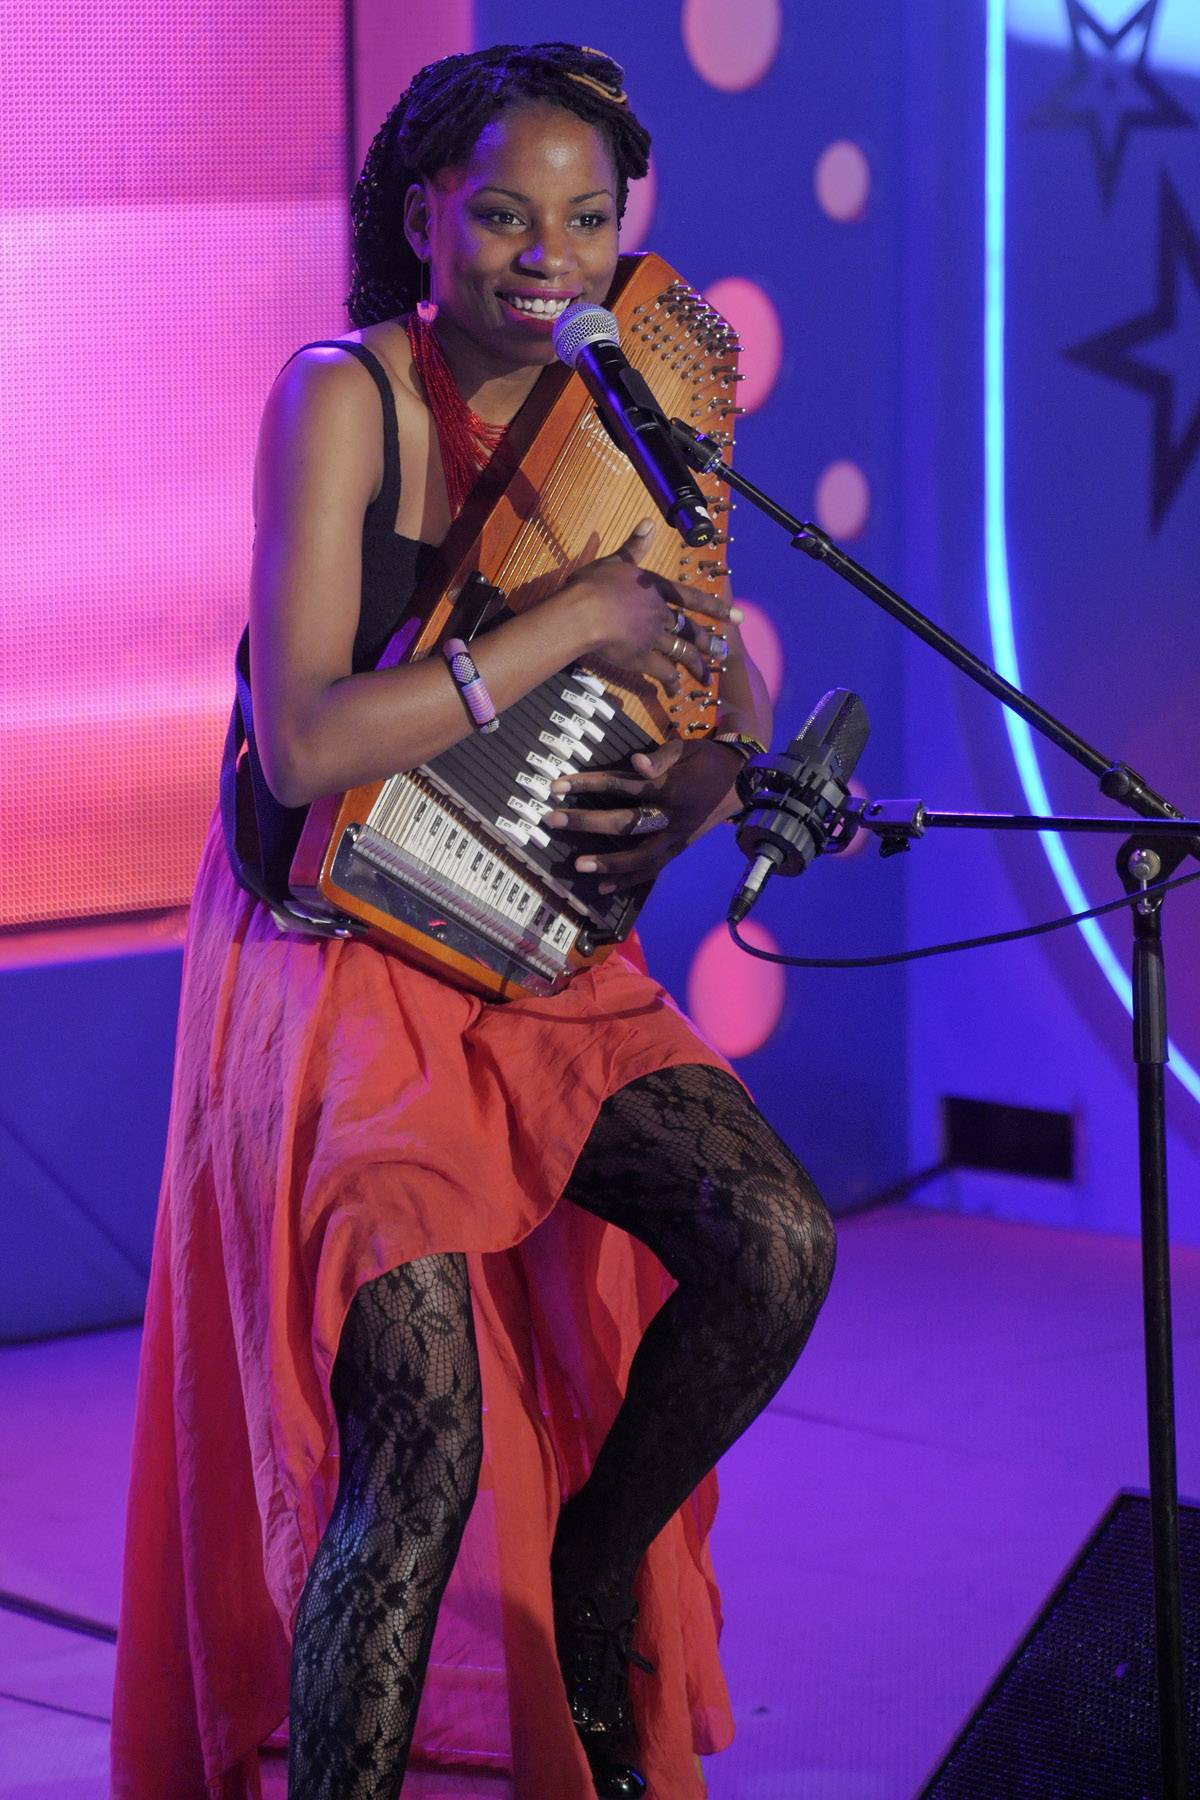 """She performs well - Lady Moon performs """"The Secret"""" at 106 & Park, May 16, 2012. (Photo: John Ricard / BET)"""